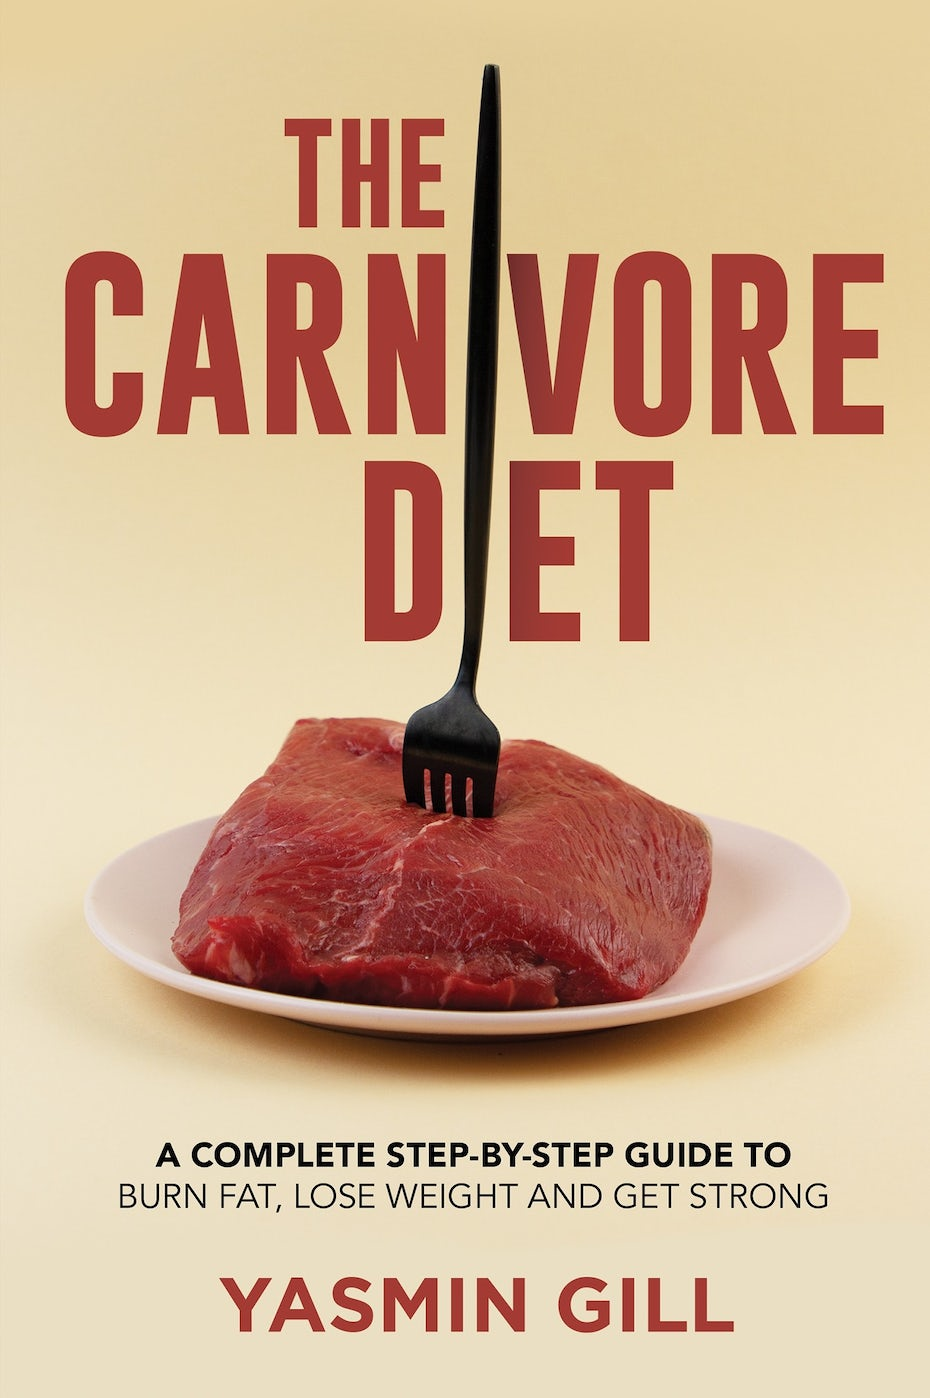 tan book cover with red text and a steak with a long fork in it